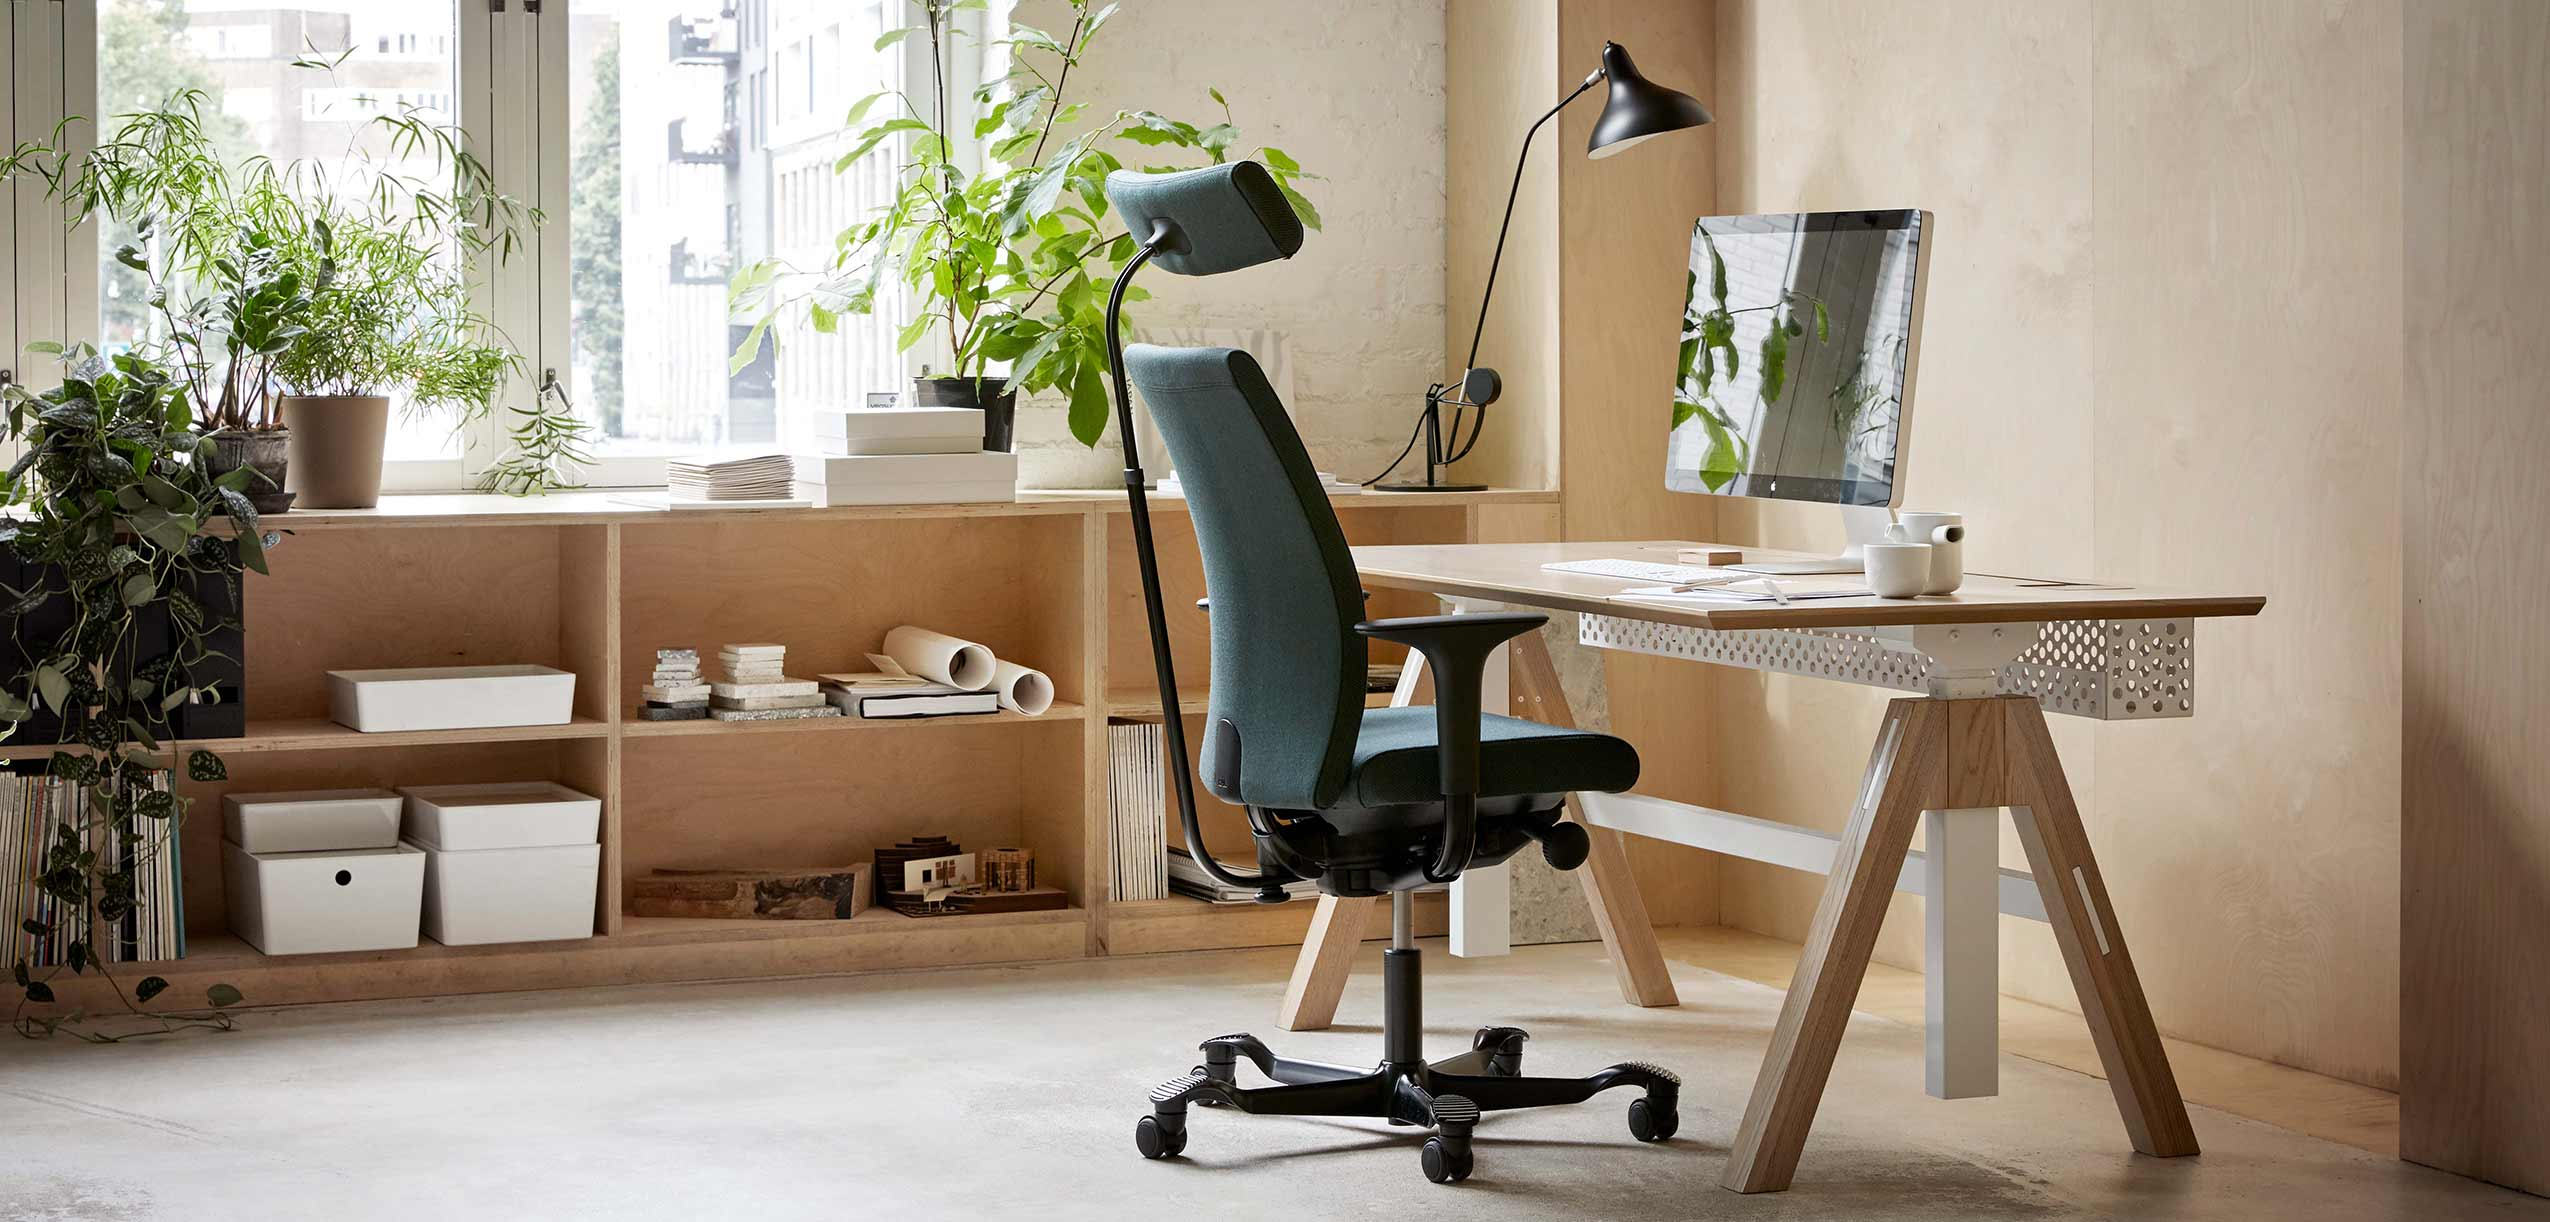 dark green HÅG Creed chair at a wooden height adjustable desk with an apple mac on it in a light office